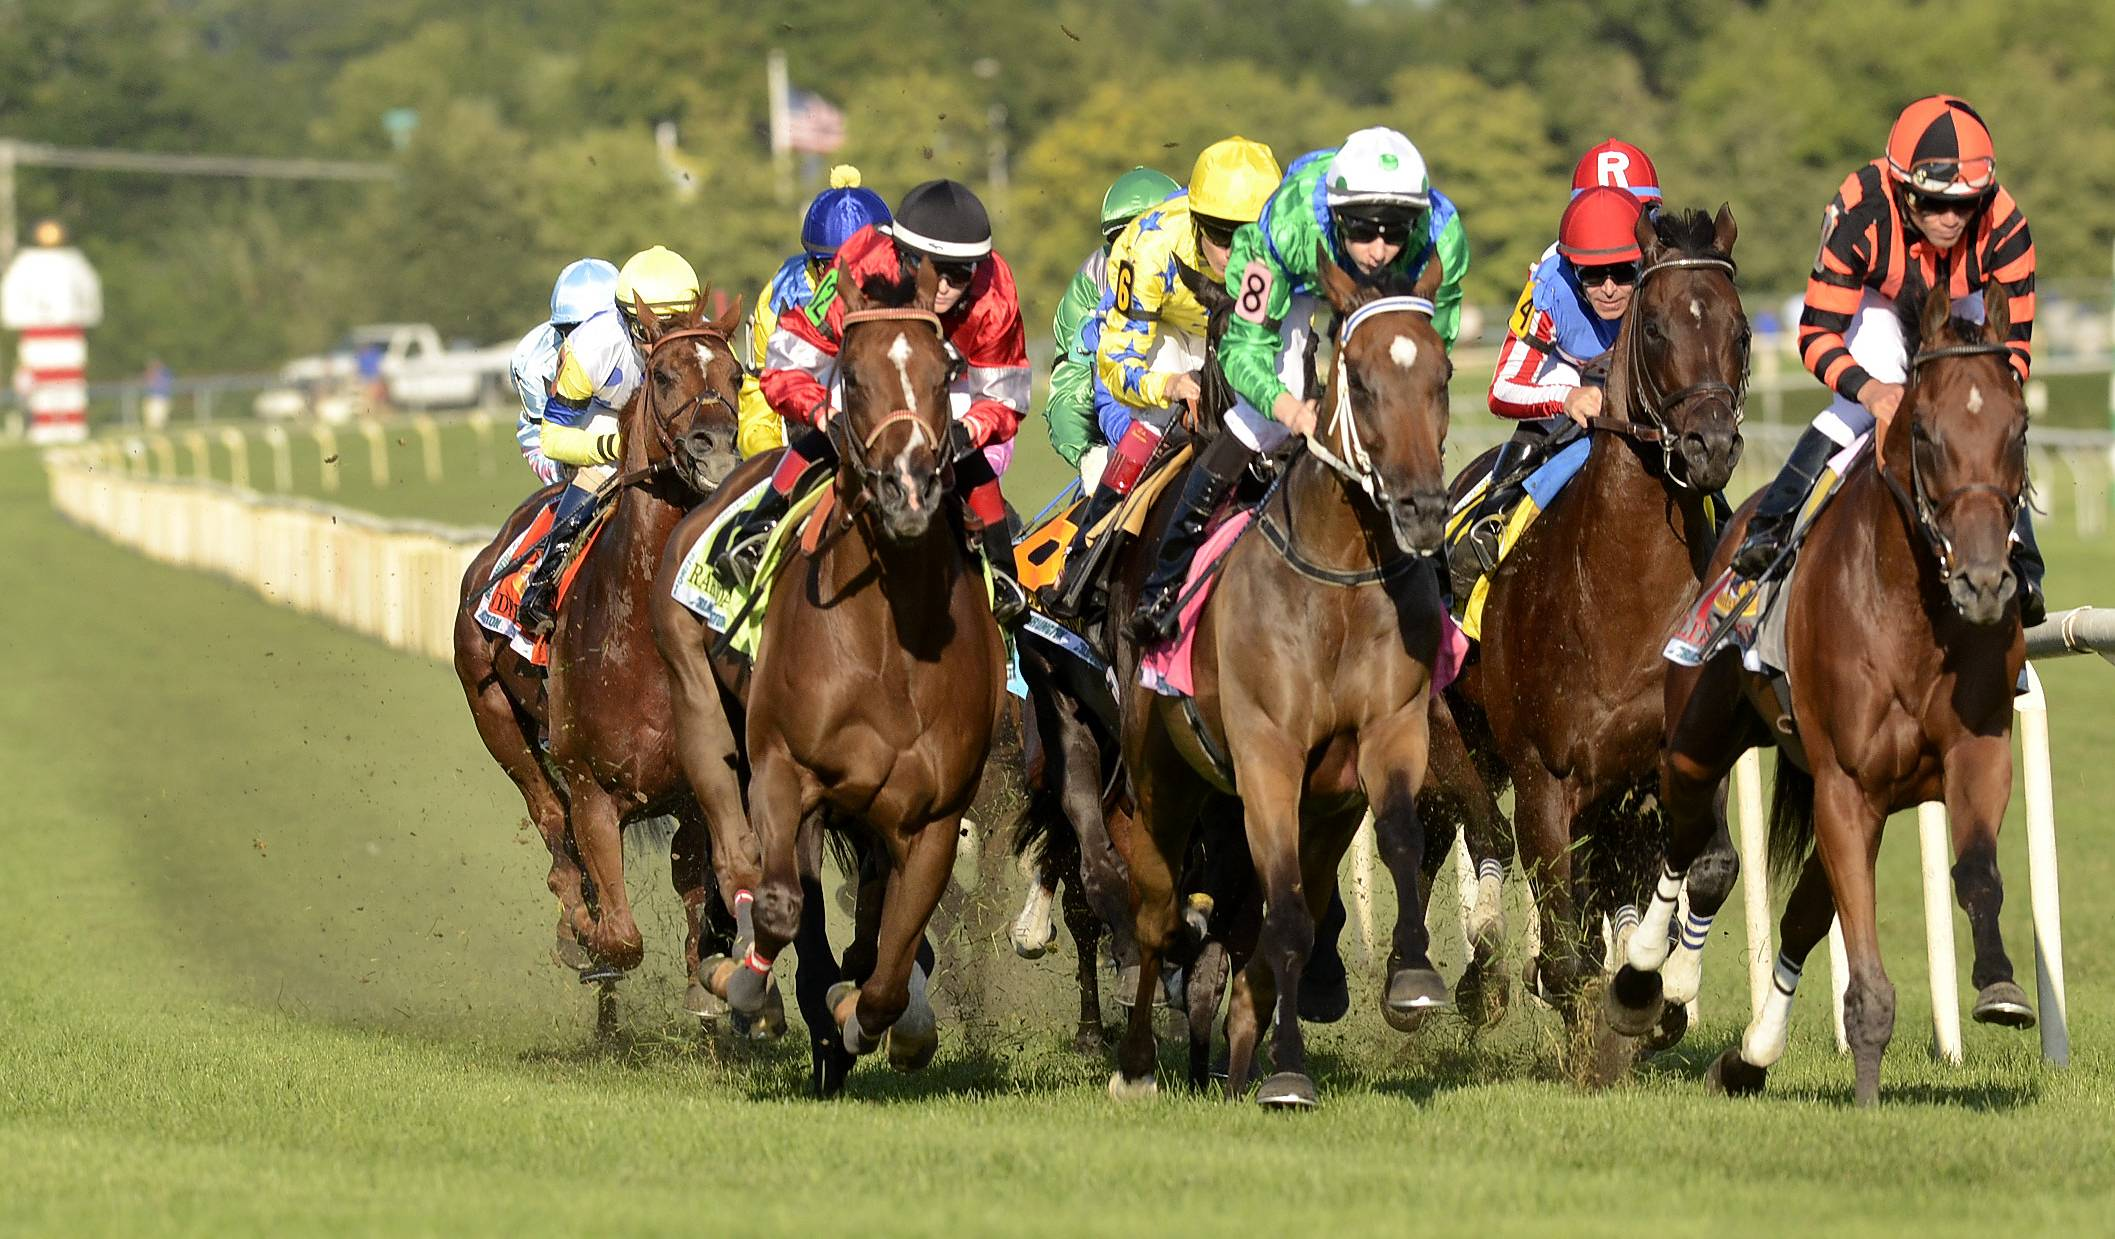 The Arlington Million returns to Arlington International Racecourse on Aug. 16.